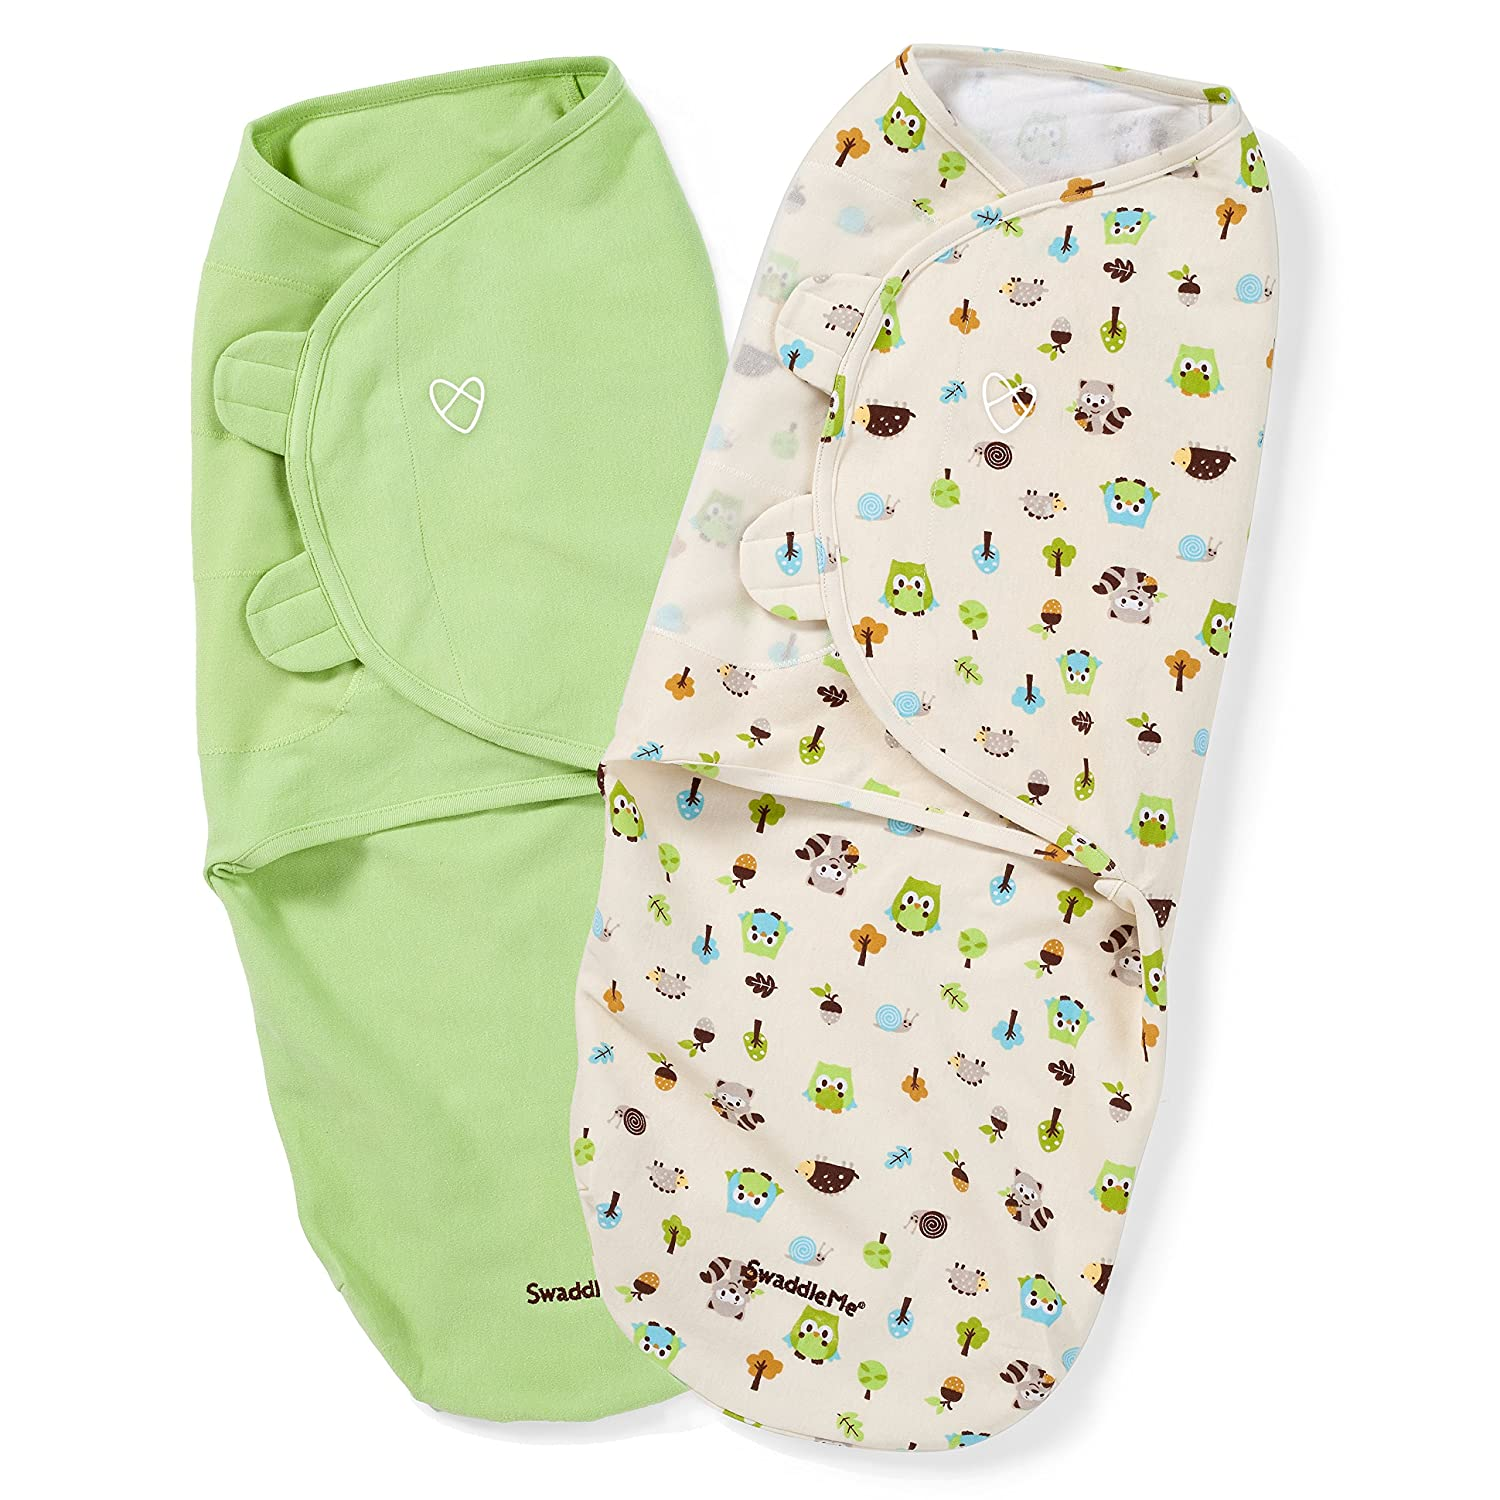 Top 4 Best Baby Swaddles for Summer Reviews in 2021 1